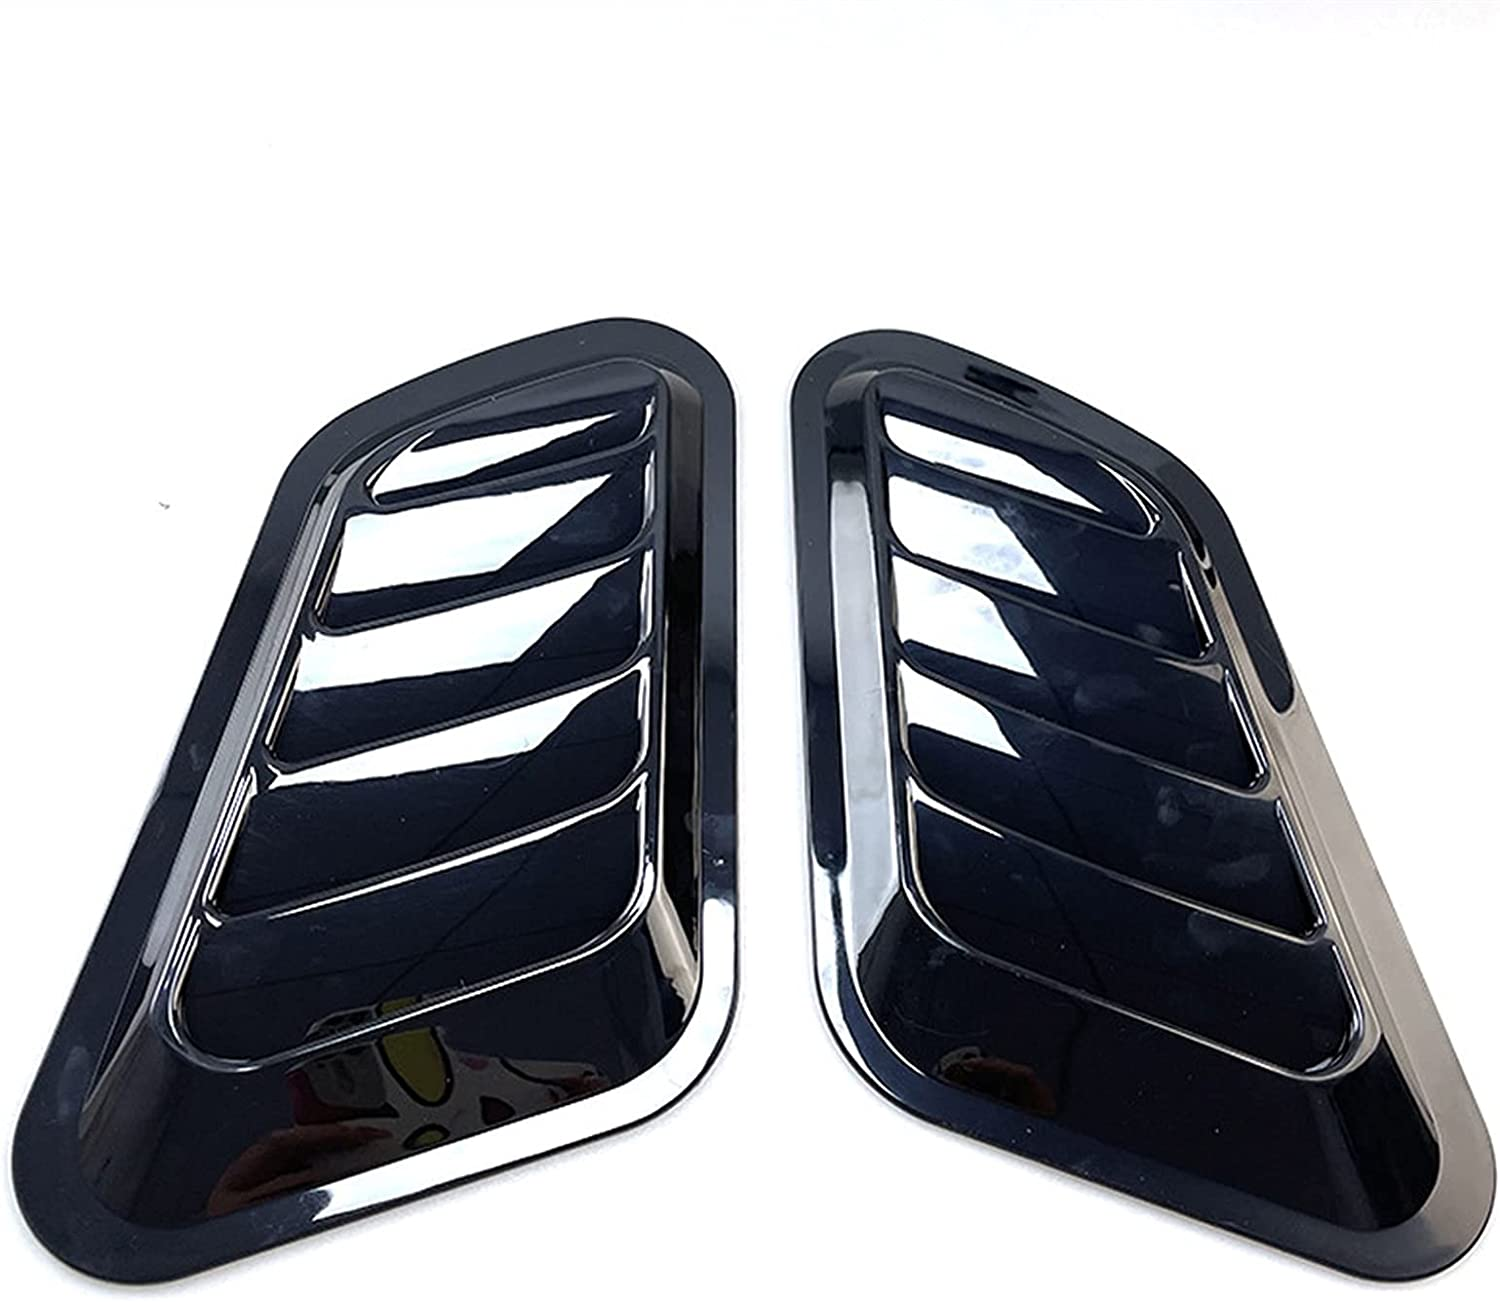 QUXING Car Exterior Louver Intake Cover ABS Price reduction Scoops NEW before selling Vent 2PCS